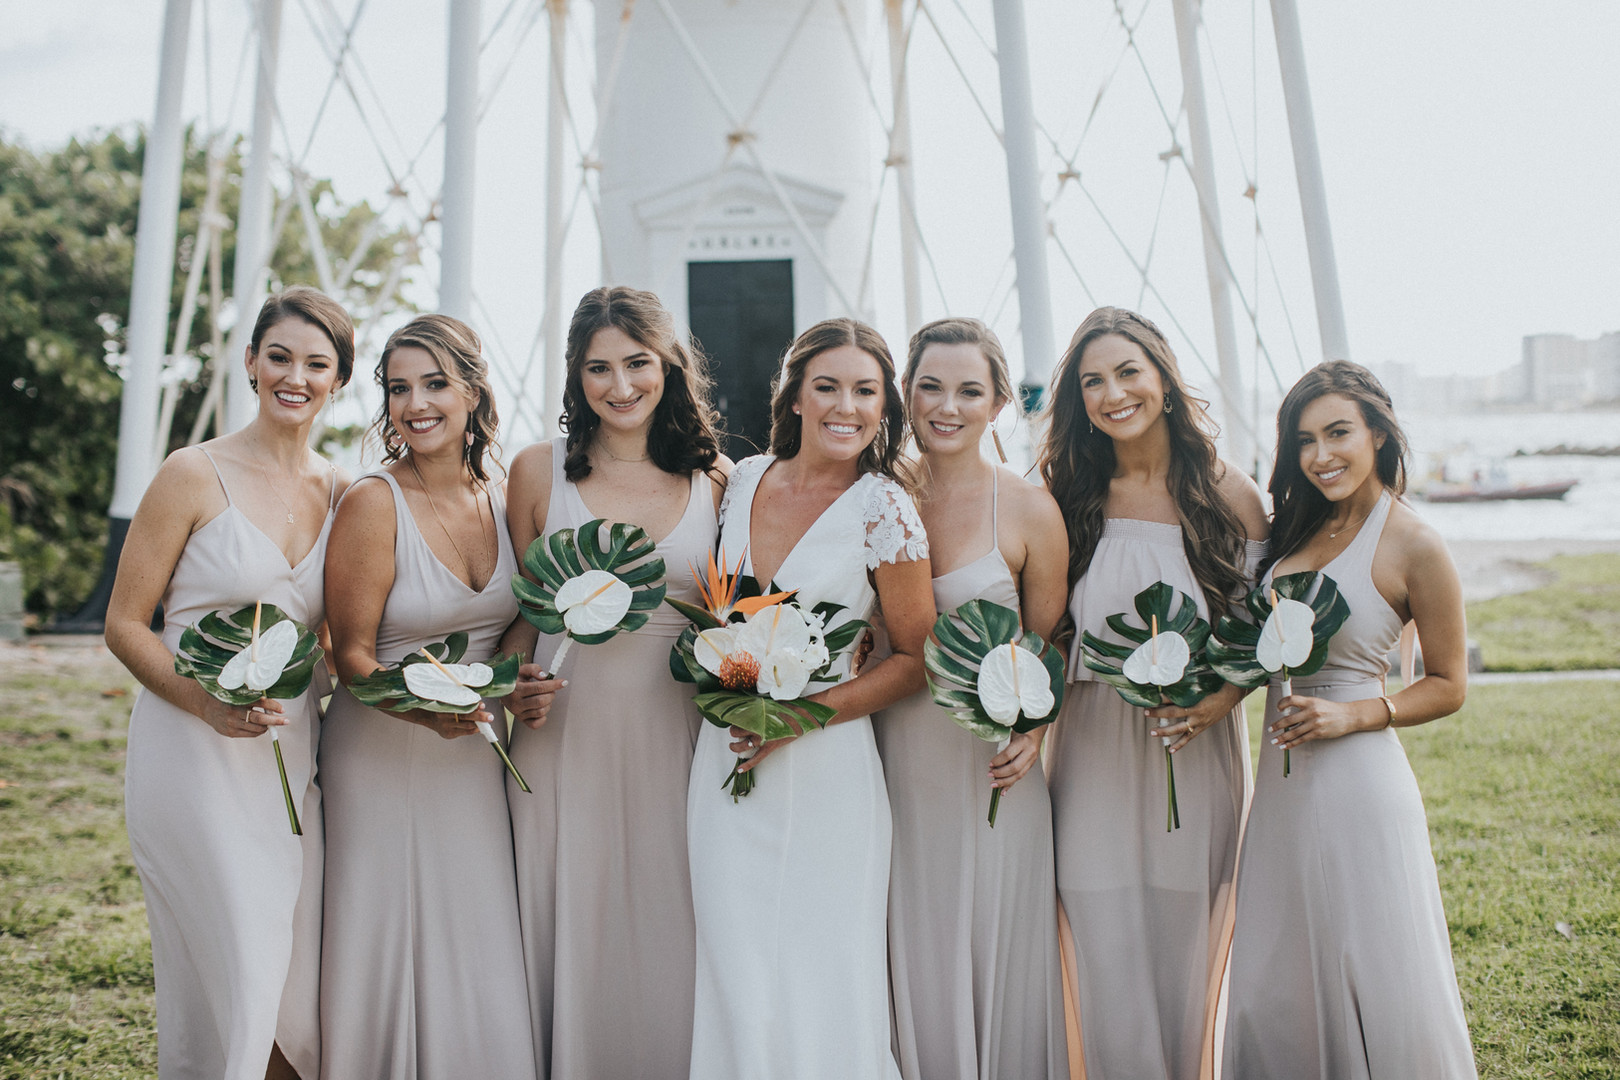 Bridesmaids & Bridal Bouquets